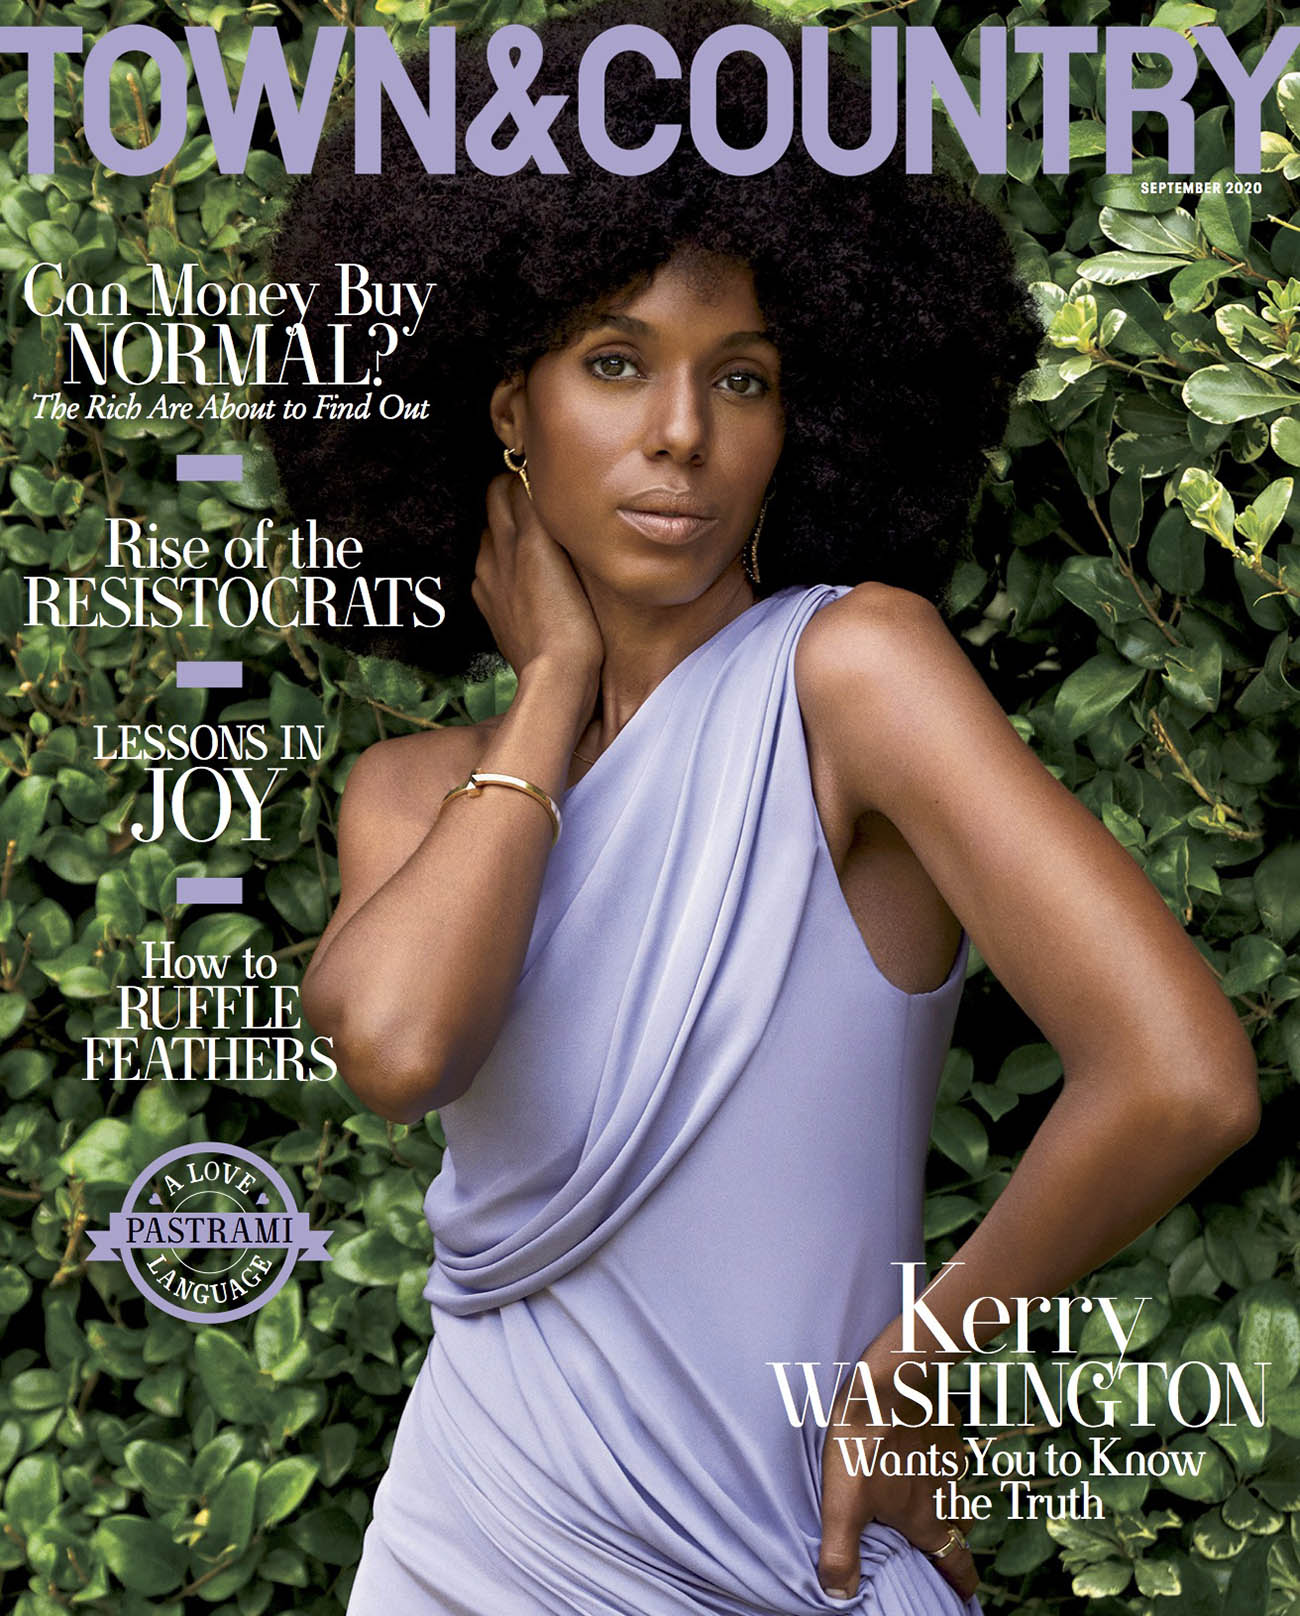 Kerry Washington covers Town & Country September 2020 by AB+DM